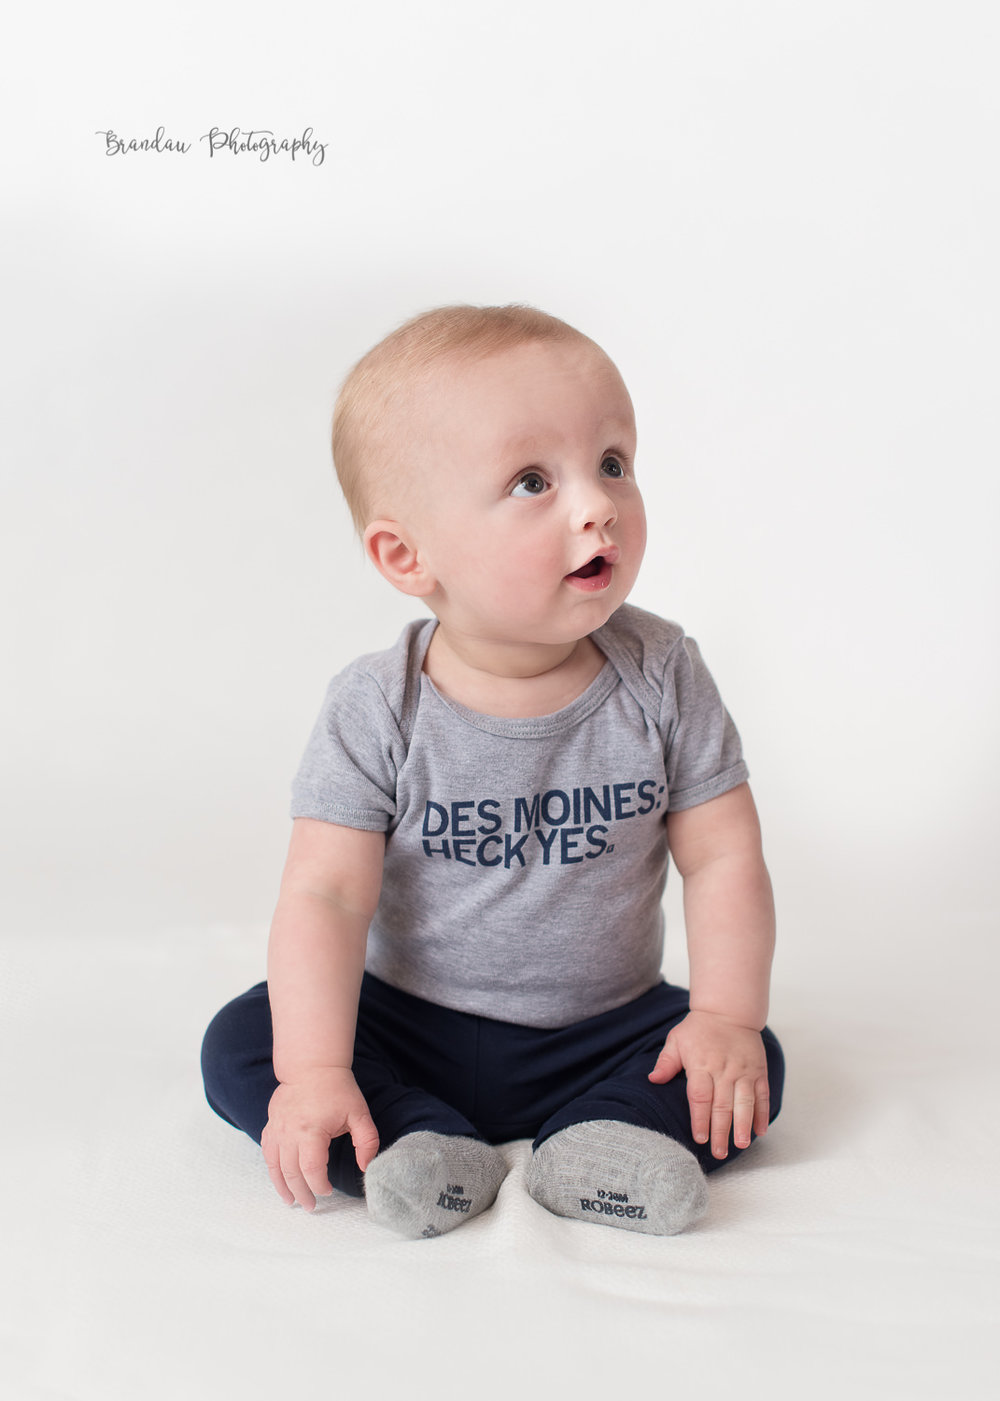 6 month baby boy looking Des Moines Raygun _Brandau Photography.jpg